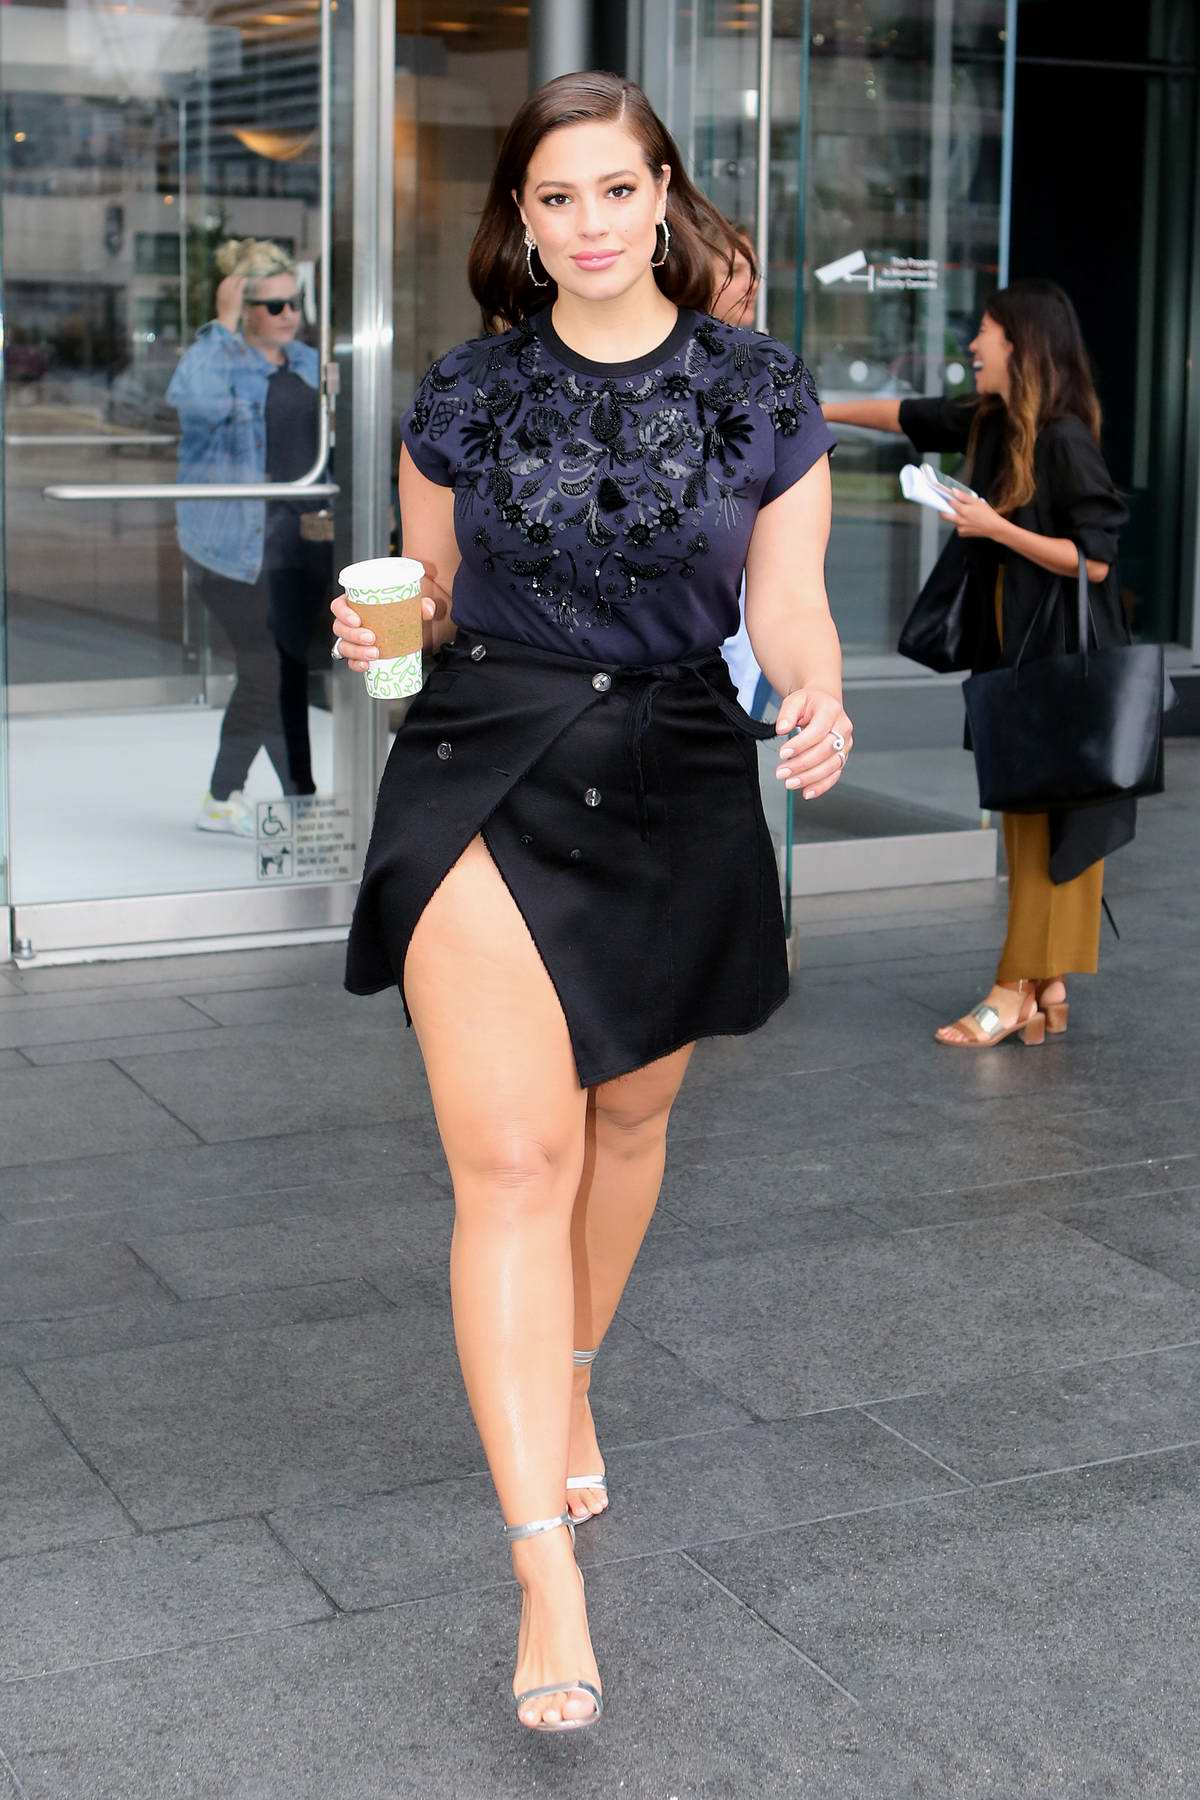 ashley-graham-at-the-corus-building-while-making-an-appearance-on-the-global-morning-show-in-toronto-canada-140717_3.jpg